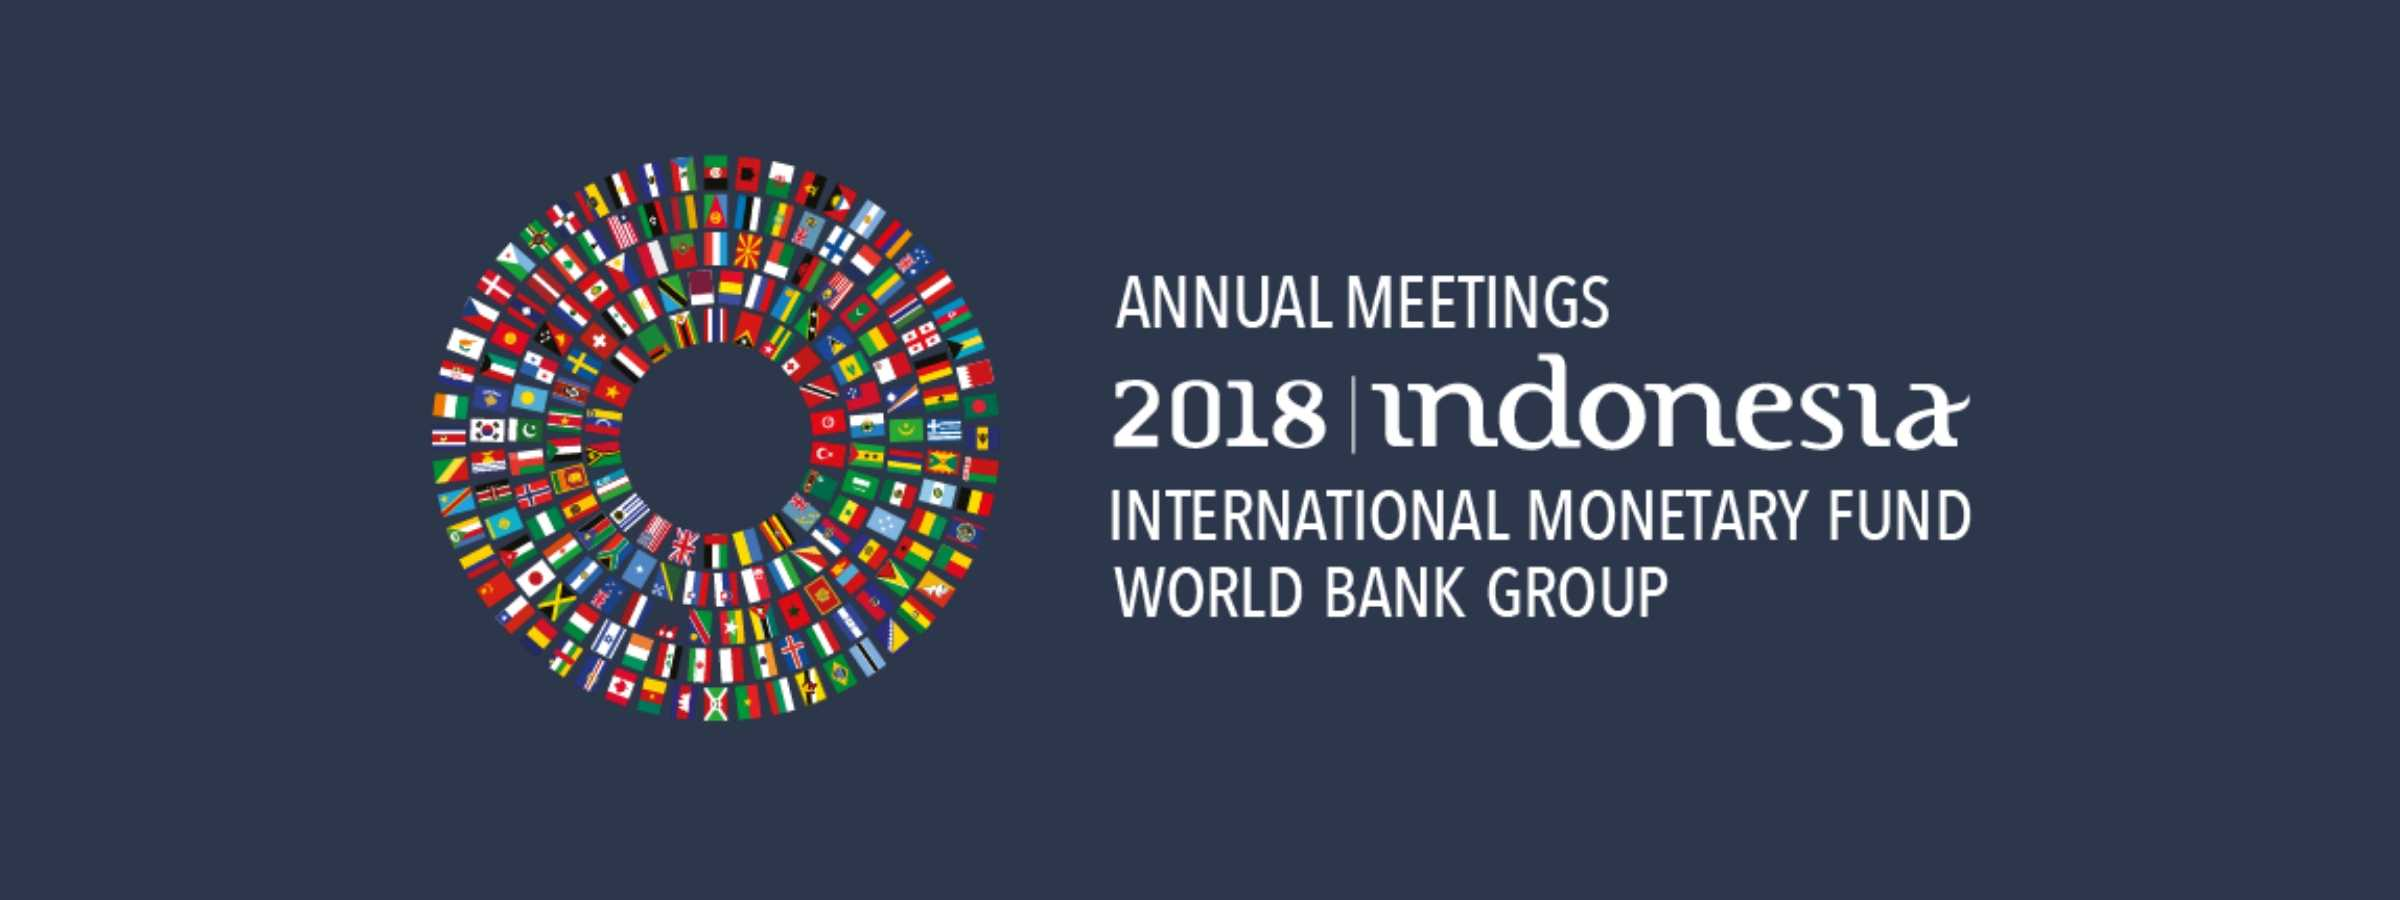 5 blended finance highlights from the World Bank meetings in Bali